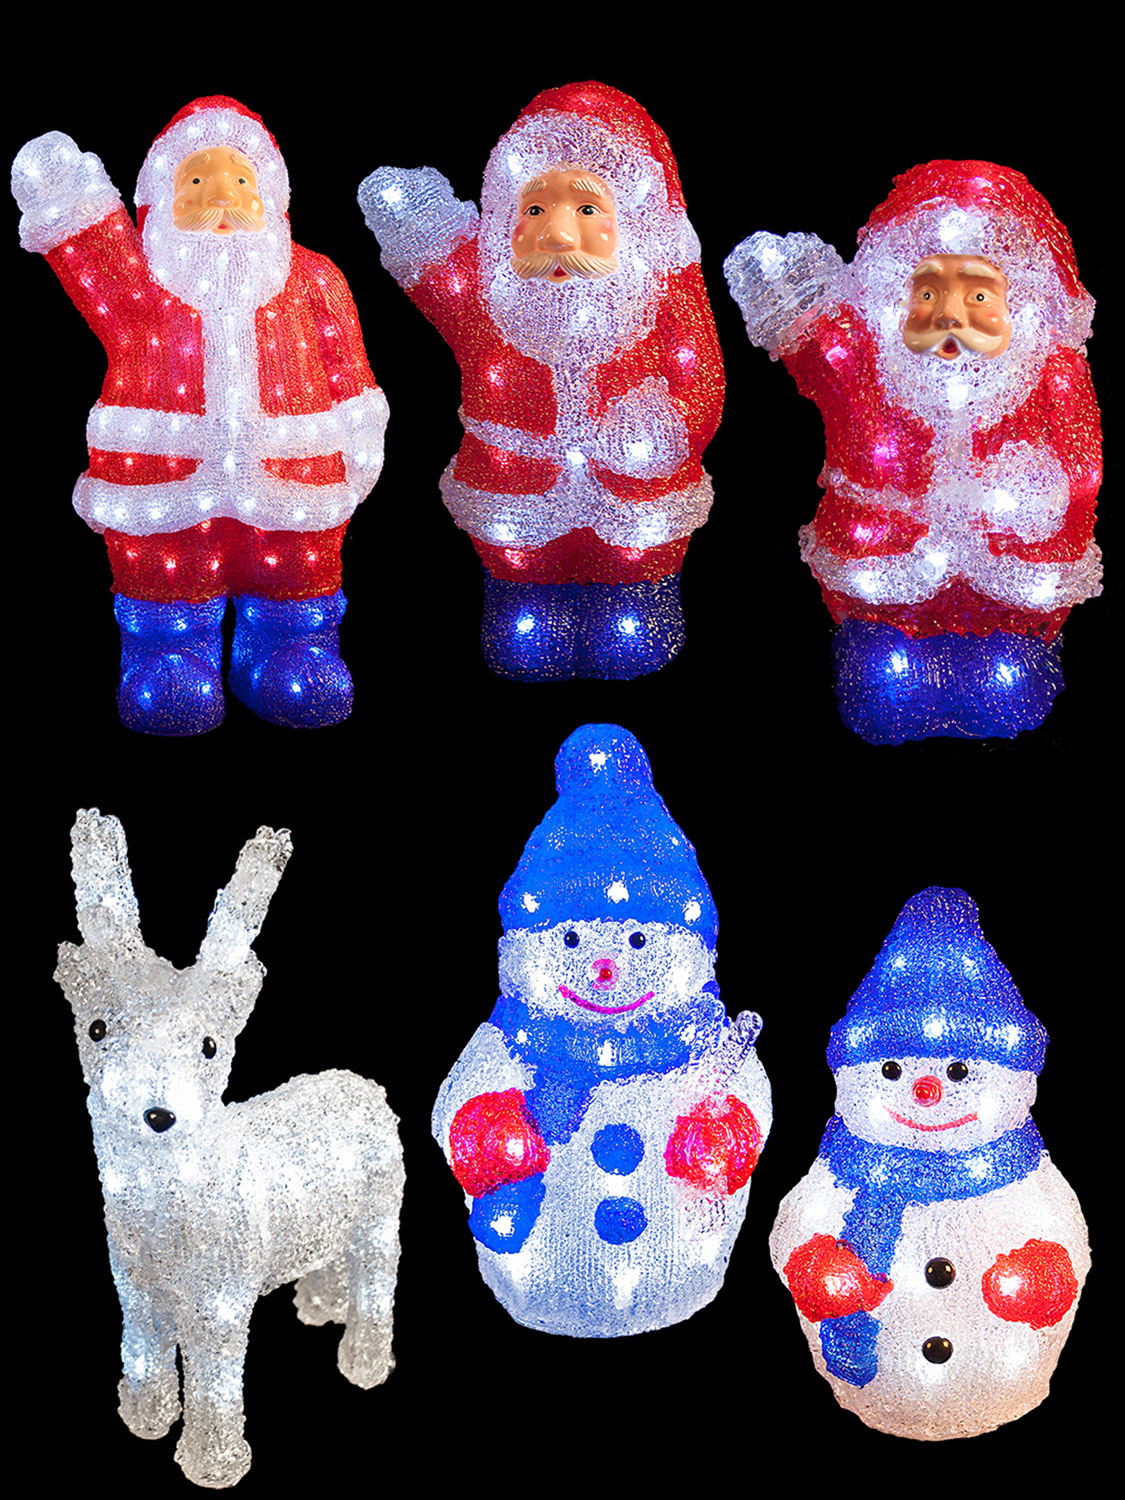 Christmas Decorations 3d Shapes Ks2 : Led acrylic christmas figures light up d santa snowman